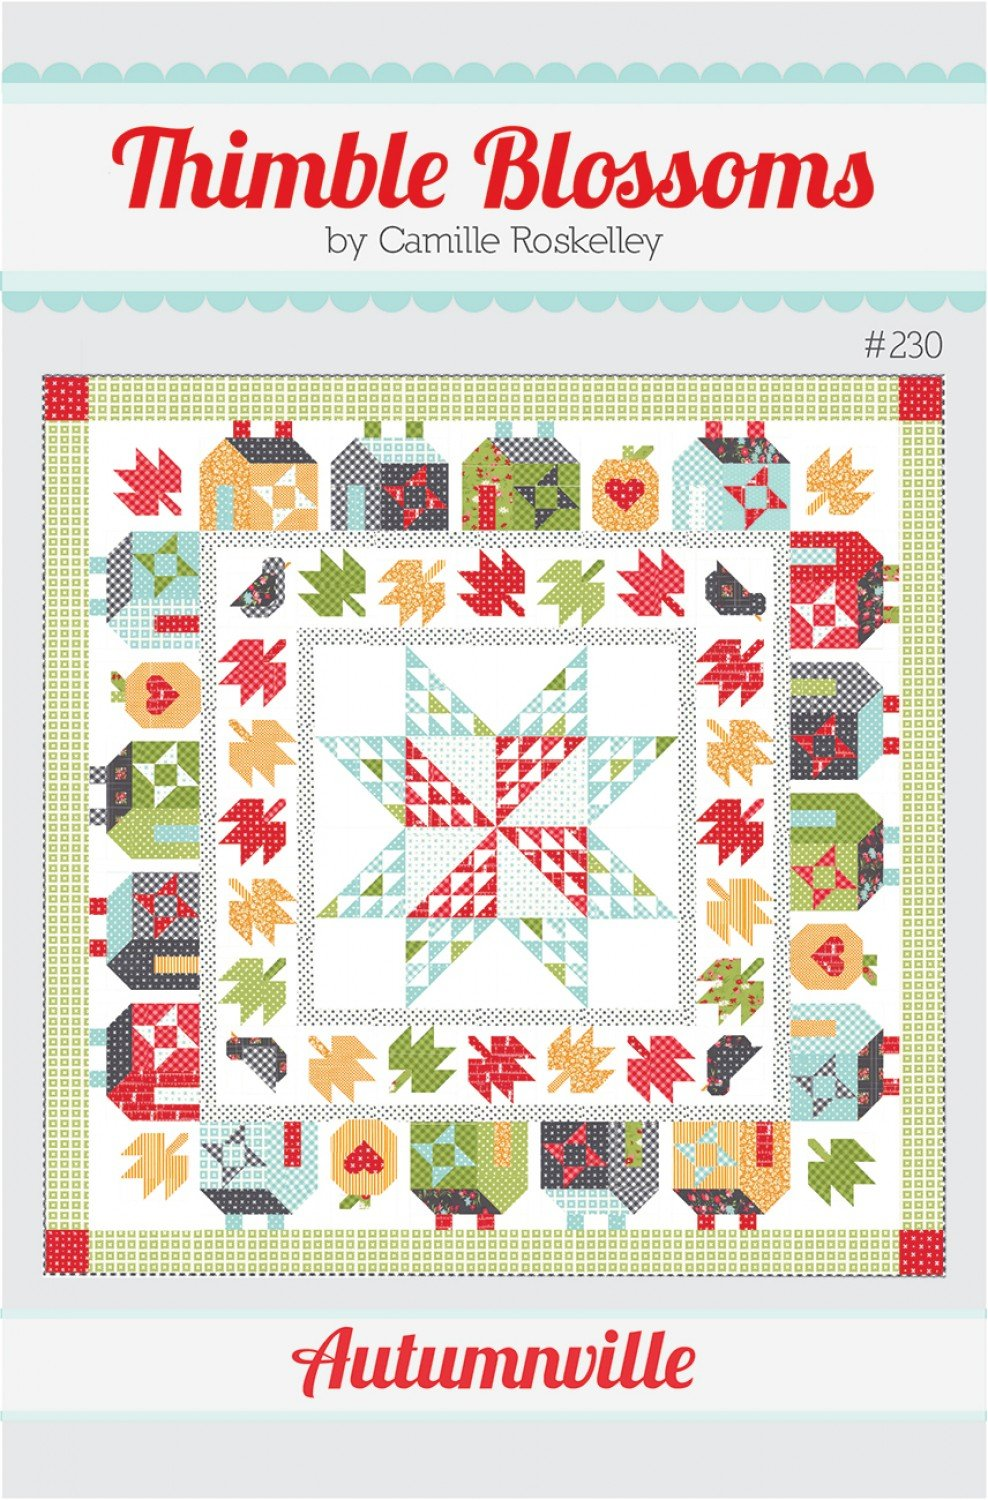 Thimble Blossoms Autumnville Pattern by Camille Roskelley